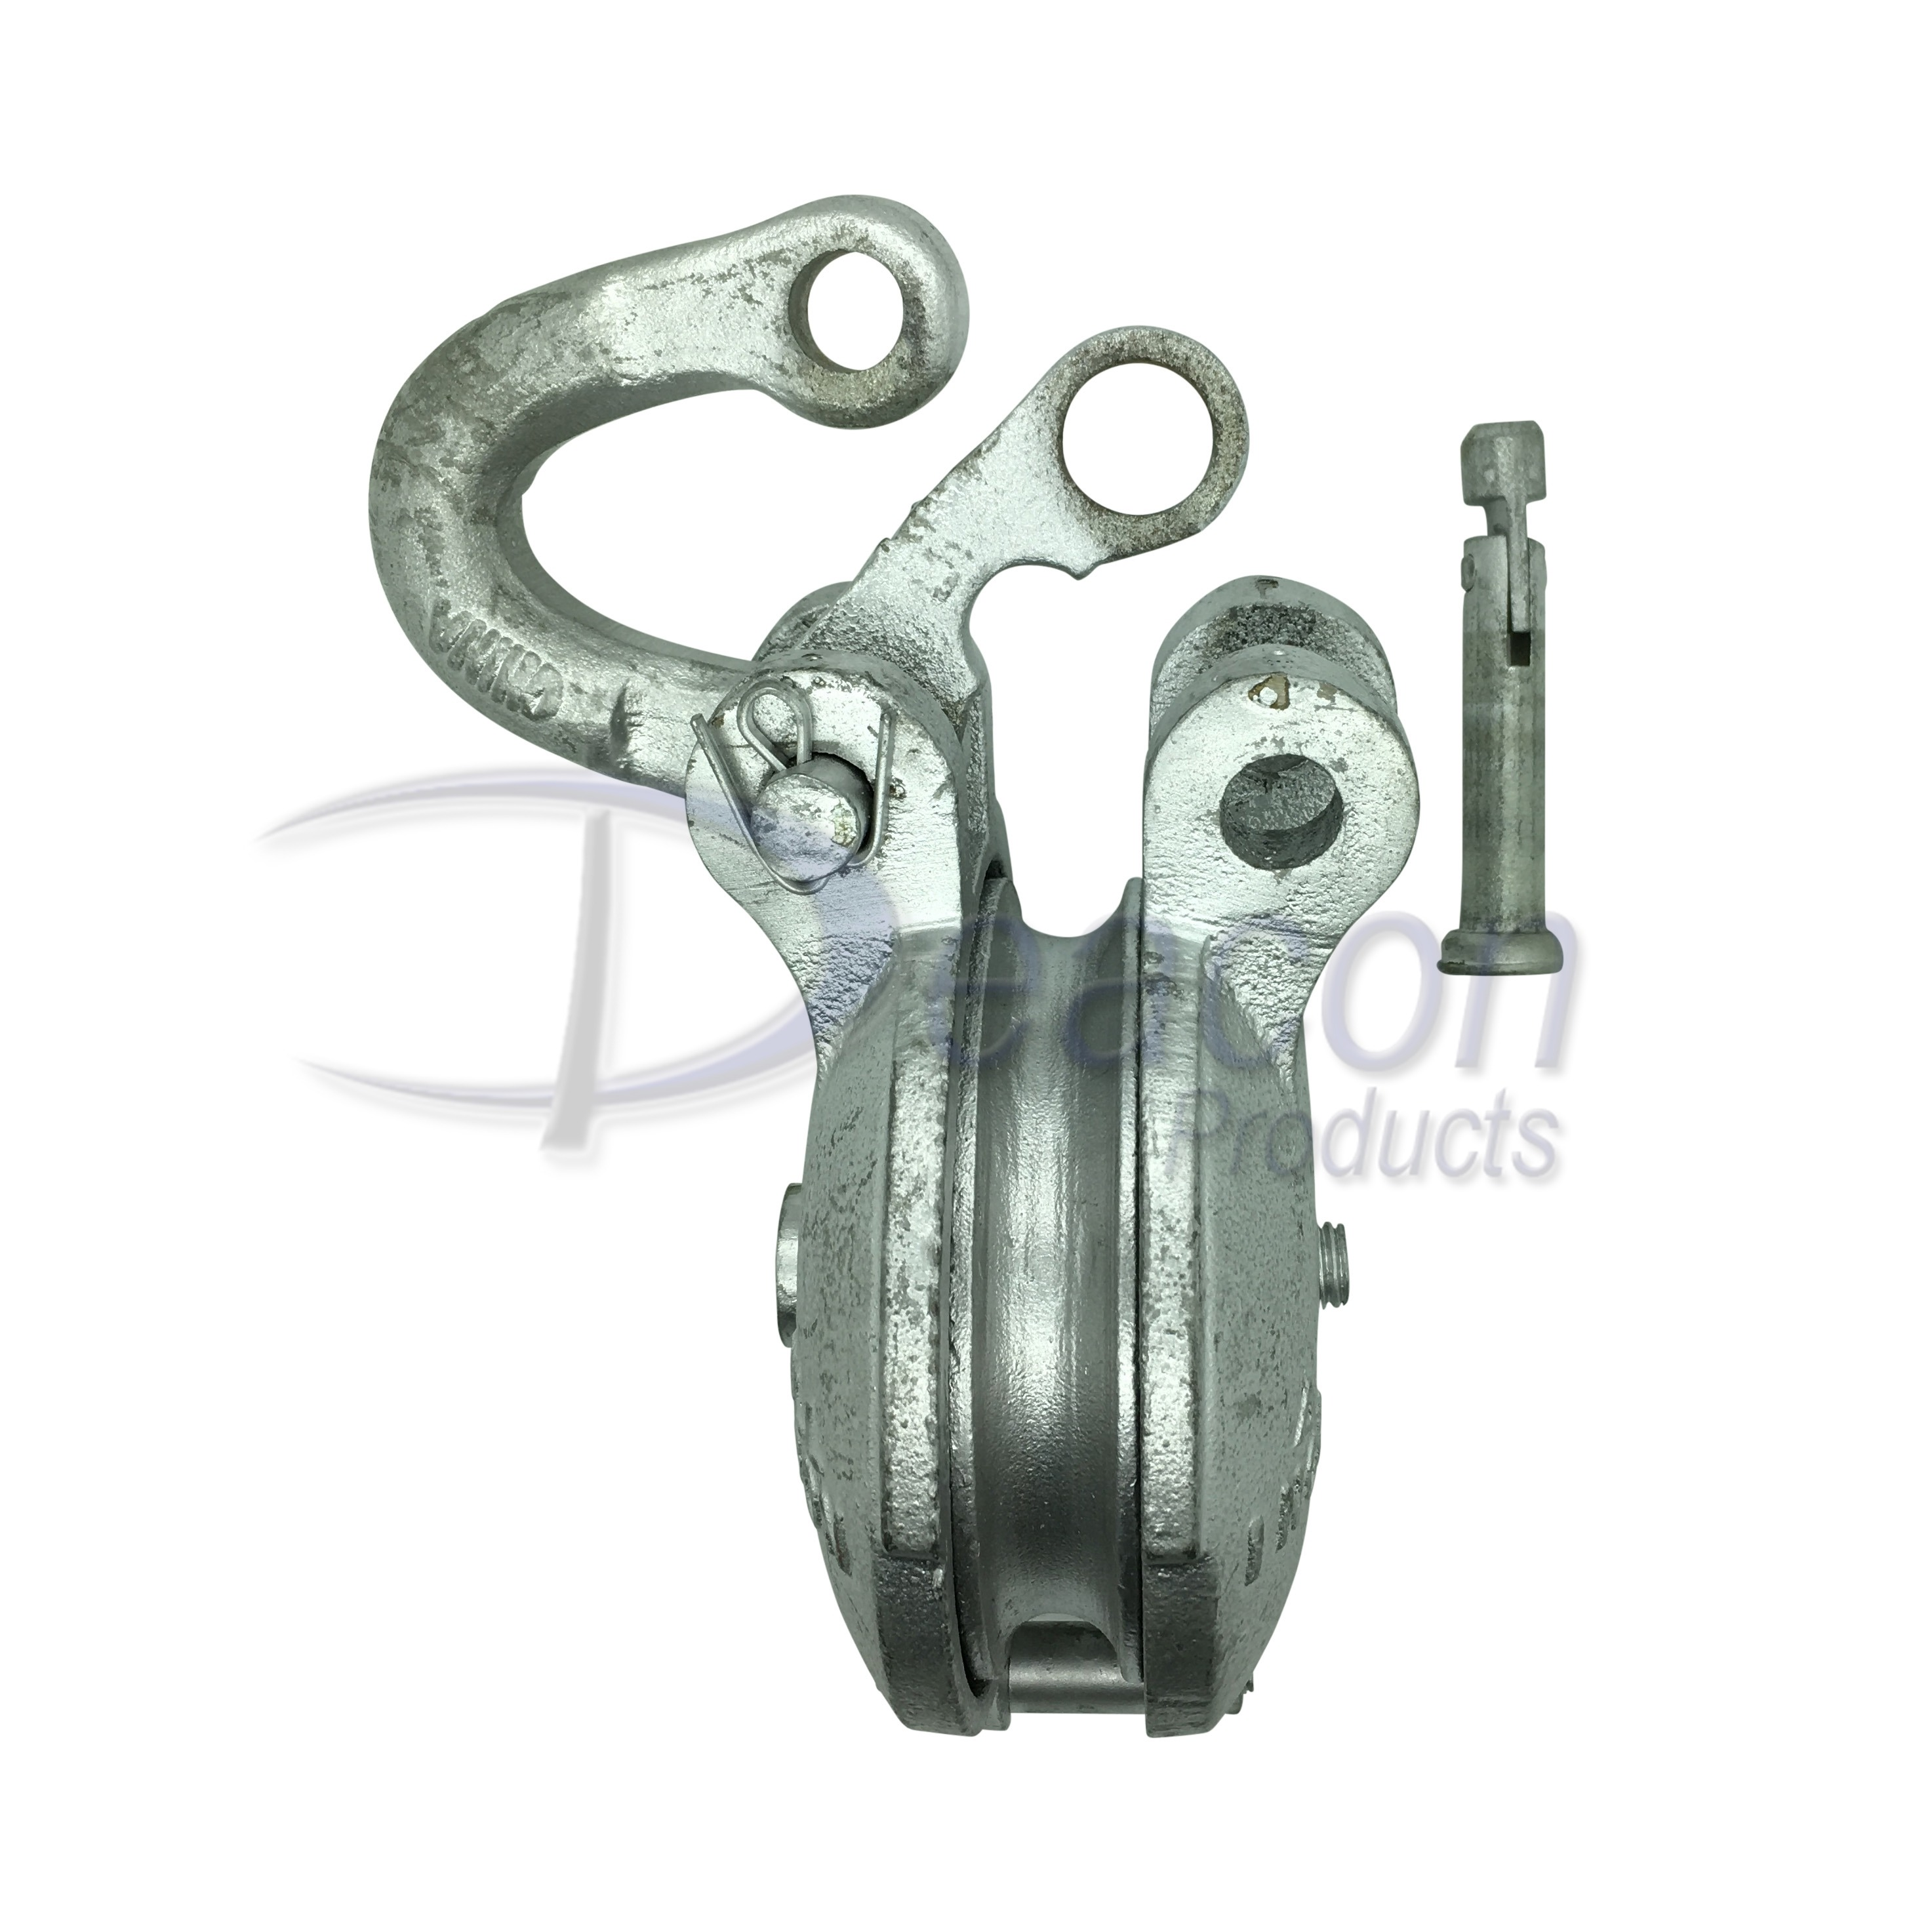 galvanized-forestry-yarding-pulley-block (3)